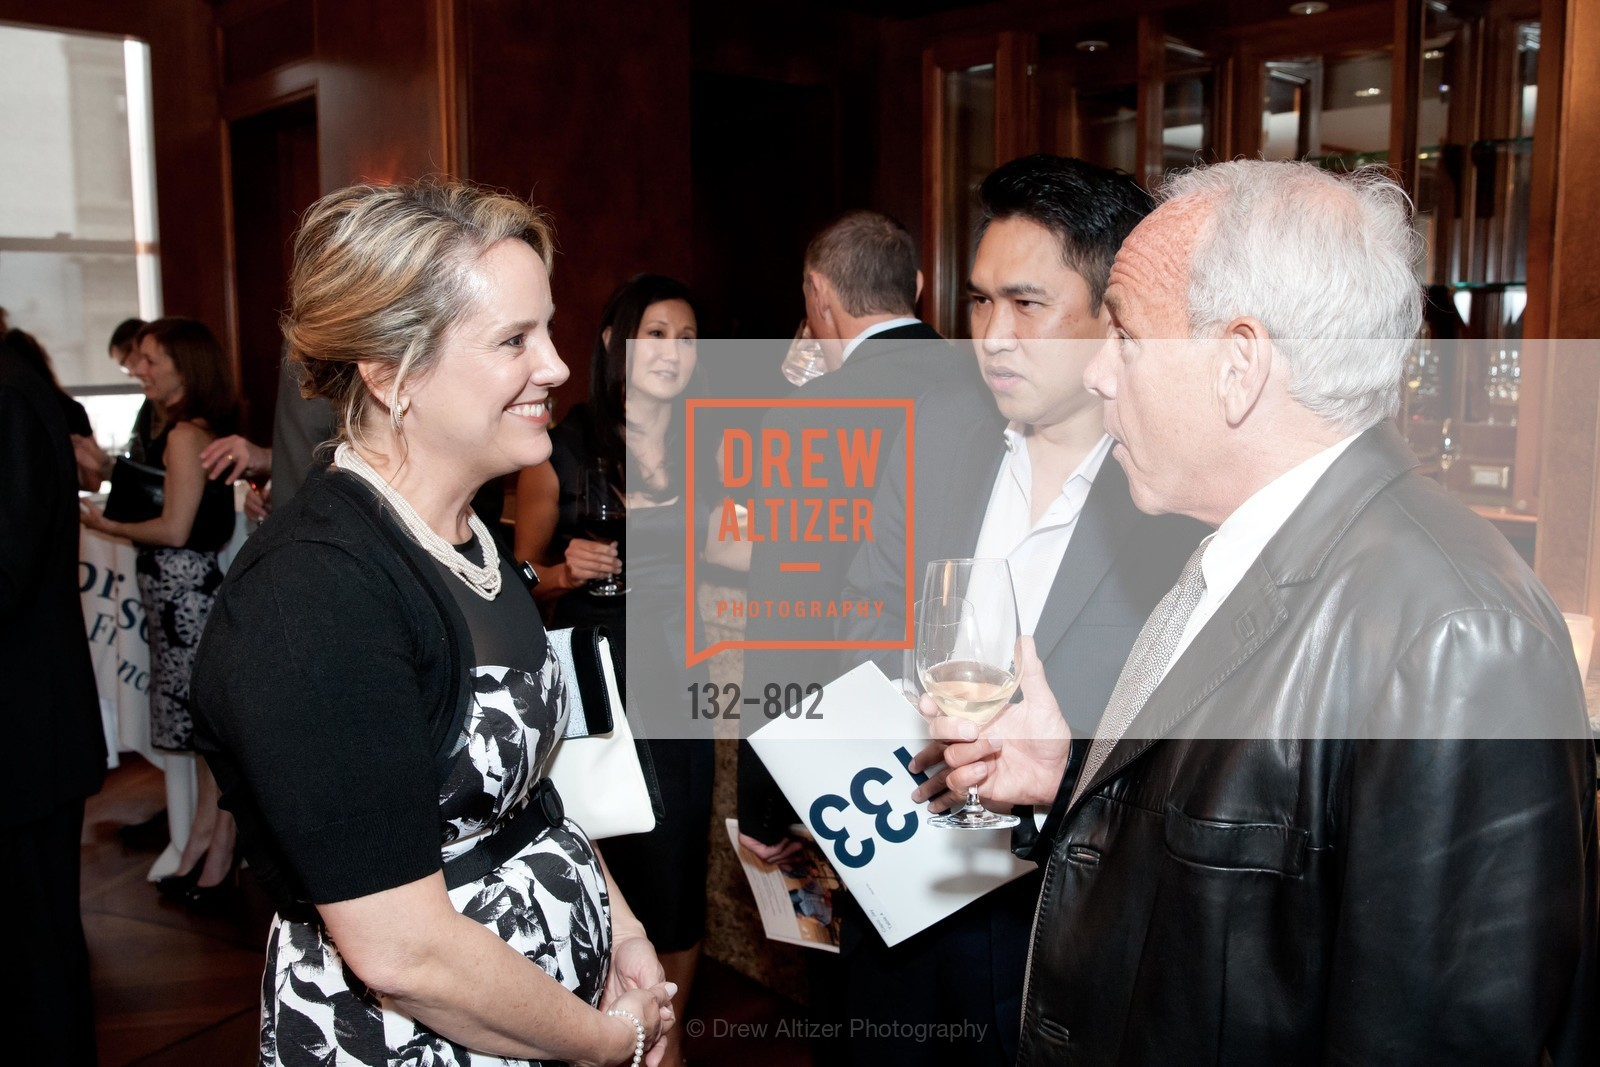 Dawn Kruger, MR PORTER Celebrate The San Francisco Issue of The Journal, US, April 24th, 2015,Drew Altizer, Drew Altizer Photography, full-service event agency, private events, San Francisco photographer, photographer California